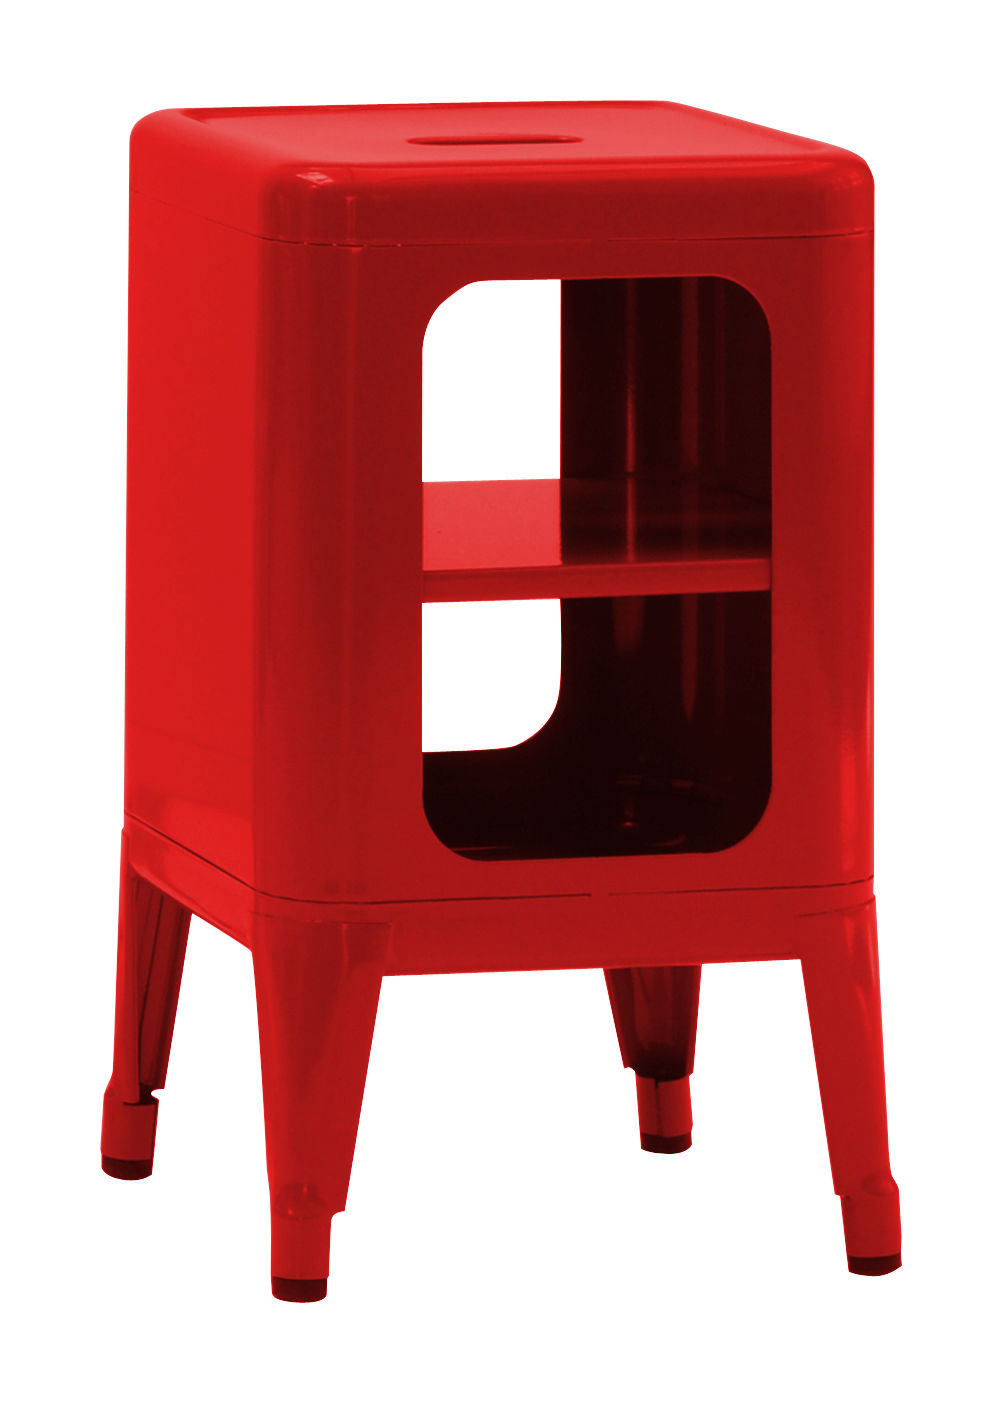 Furniture - Bookcases & Bookshelves - Storage unit - Lacquered steel - H 50 cm by Tolix - Chilli red - Lacquered steel